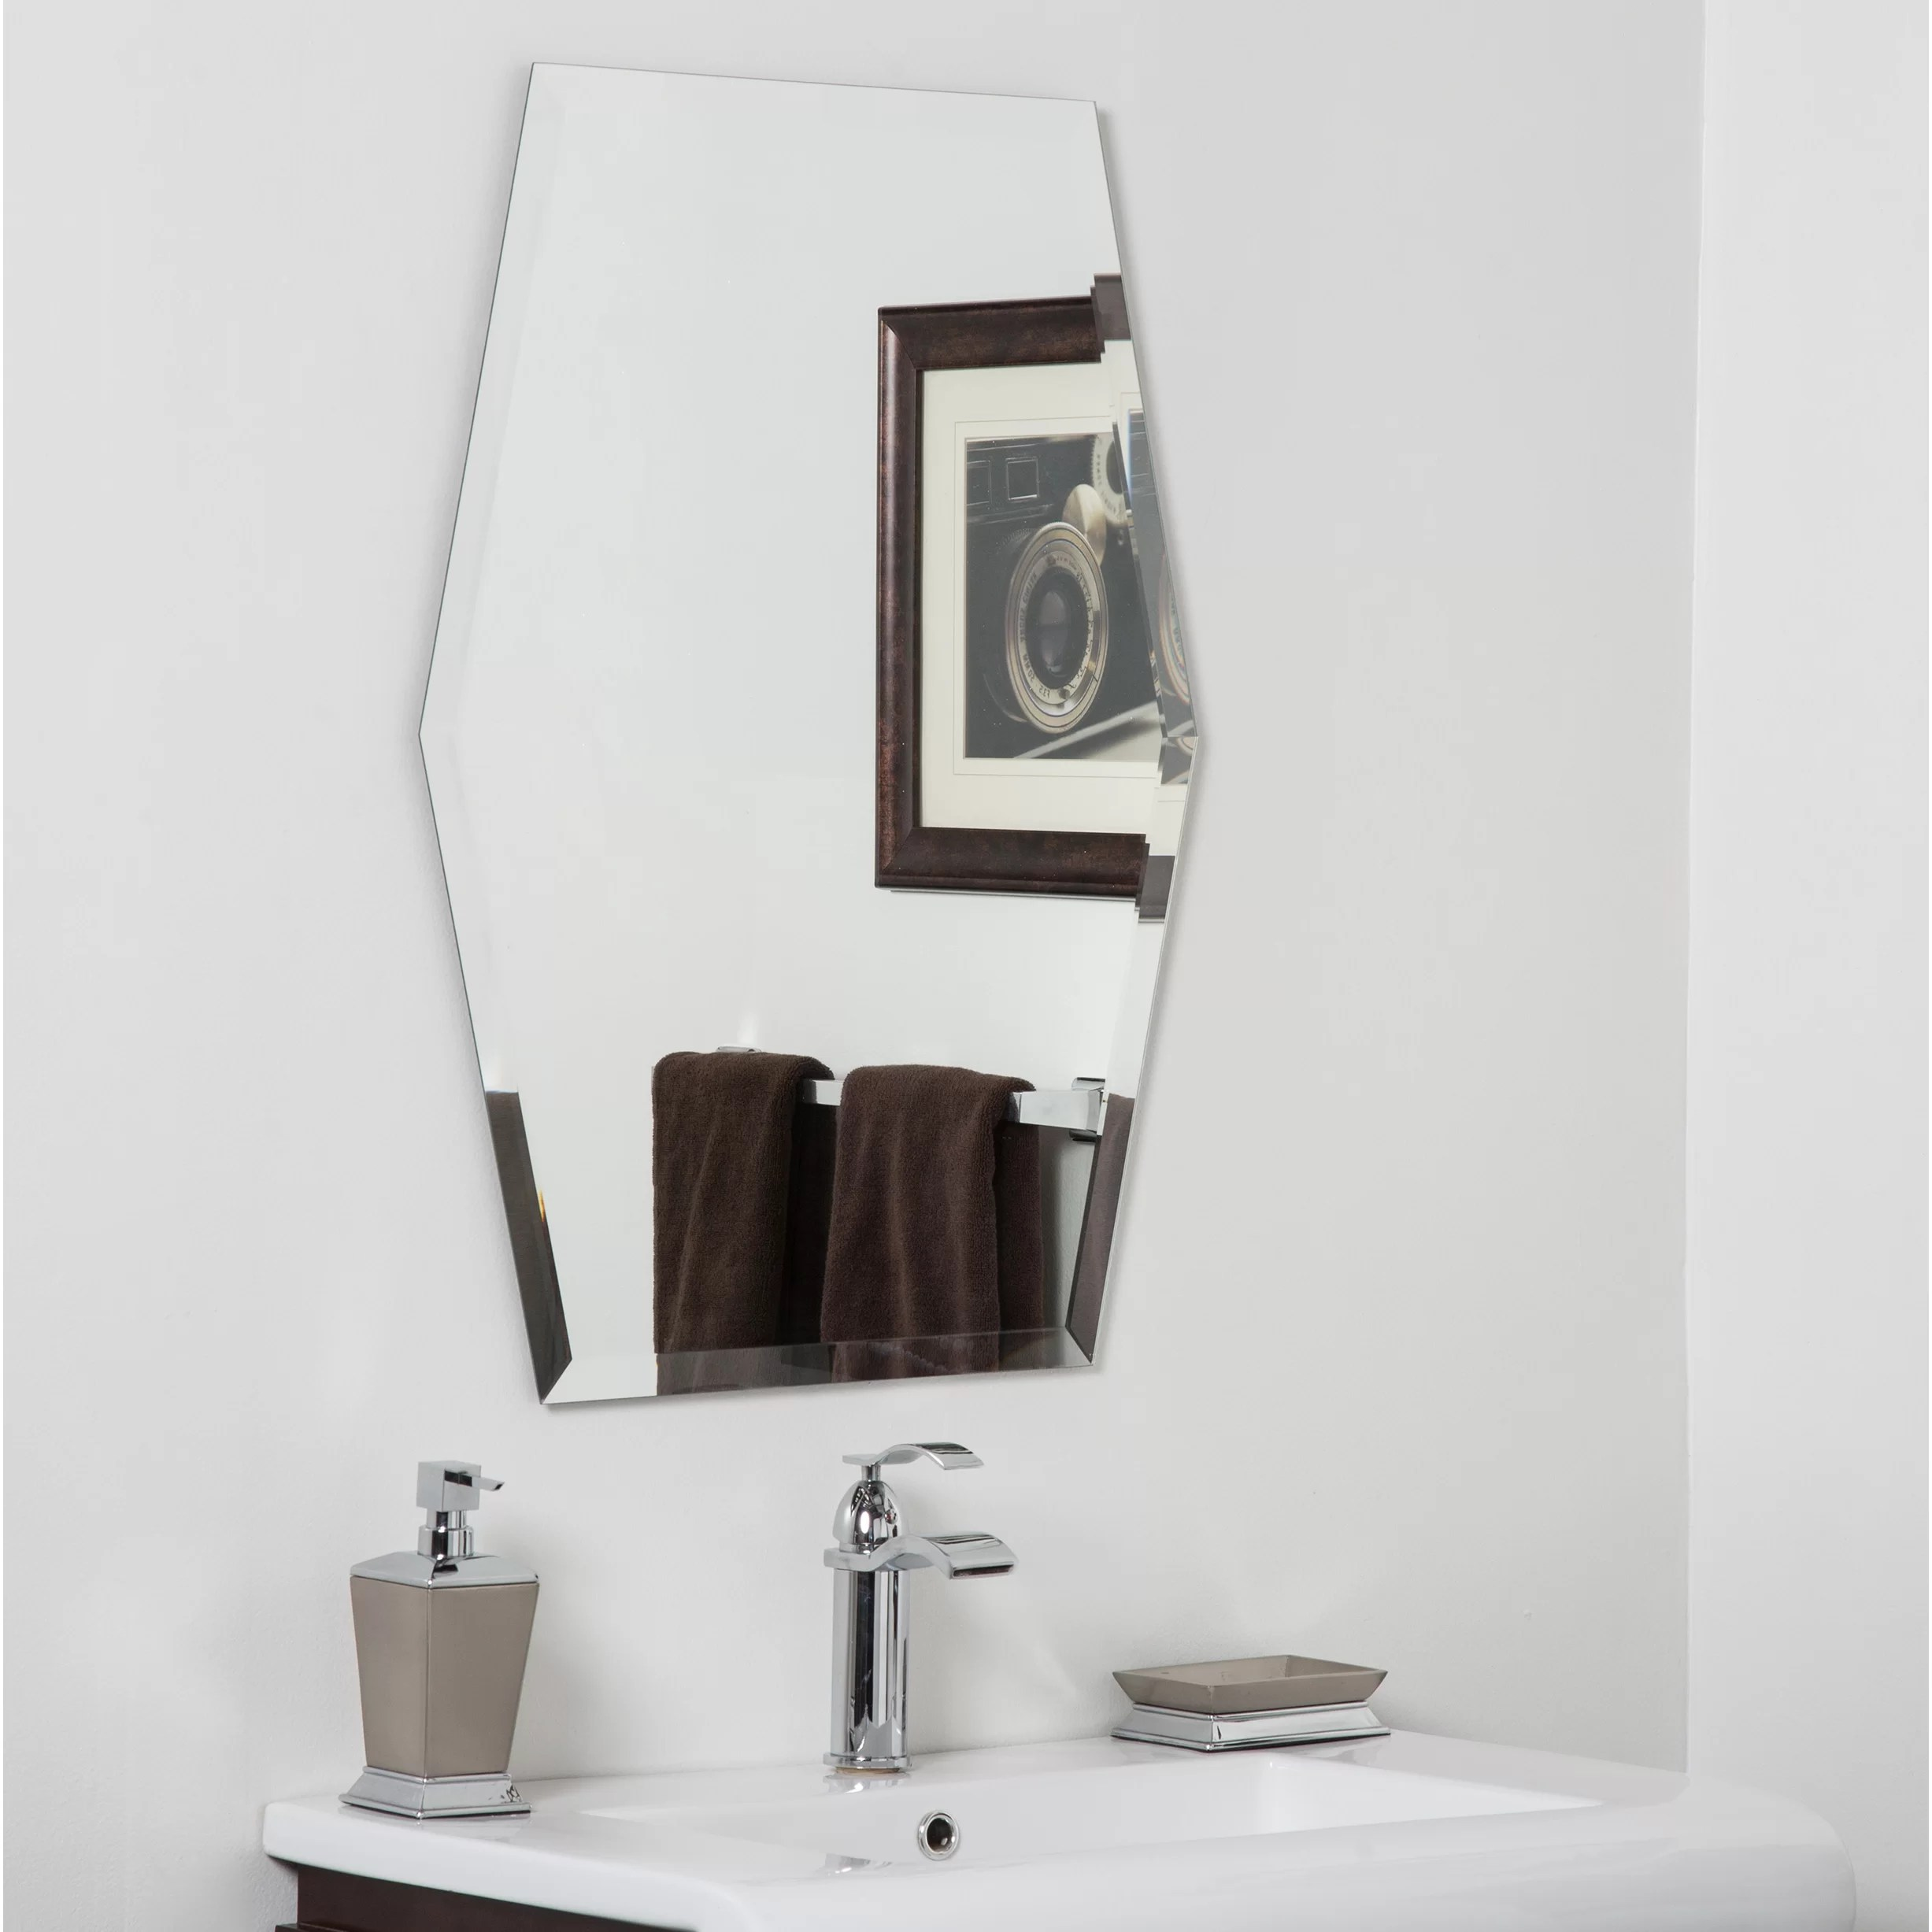 Decorative Bathroom Mirrors Sale Decor Wonderland Century Bathroom Wall Mirror Wayfair